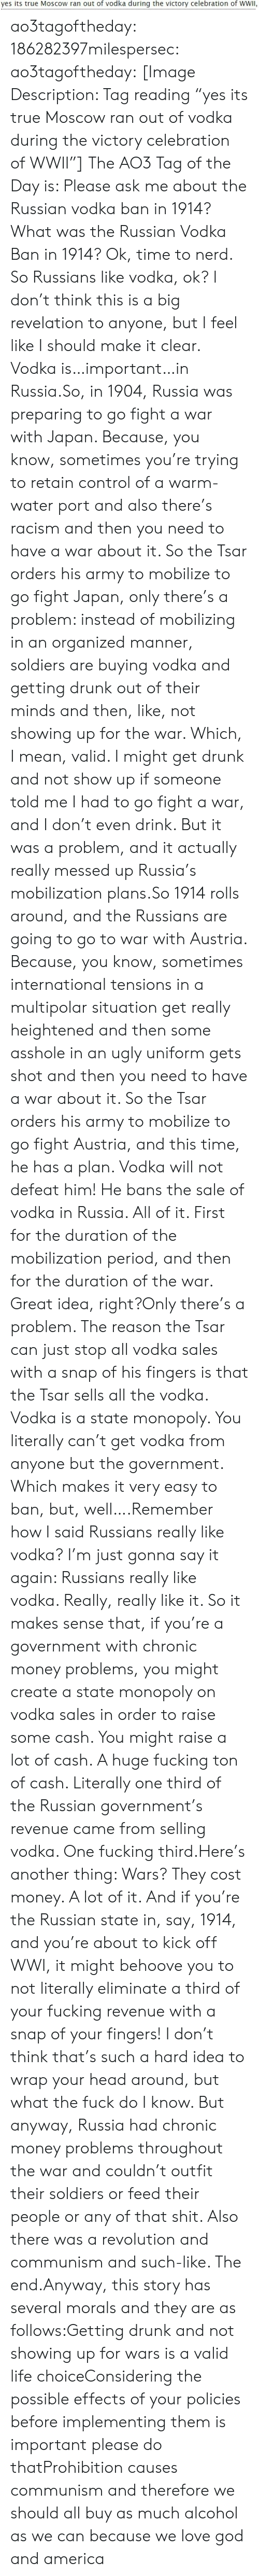 "Alcohol: yes its true Moscow ran out of vodka during the victory celebration of WWII, ao3tagoftheday:  186282397milespersec:  ao3tagoftheday:  [Image Description: Tag reading ""yes its true Moscow ran out of vodka during the victory celebration of WWII""]  The AO3 Tag of the Day is: Please ask me about the Russian vodka ban in 1914?   What was the Russian Vodka Ban in 1914?  Ok, time to nerd. So Russians like vodka, ok? I don't think this is a big revelation to anyone, but I feel like I should make it clear. Vodka is…important…in Russia.So, in 1904, Russia was preparing to go fight a war with Japan. Because, you know, sometimes you're trying to retain control of a warm-water port and also there's racism and then you need to have a war about it. So the Tsar orders his army to mobilize to go fight Japan, only there's a problem: instead of mobilizing in an organized manner, soldiers are buying vodka and getting drunk out of their minds and then, like, not showing up for the war. Which, I mean, valid. I might get drunk and not show up if someone told me I had to go fight a war, and I don't even drink. But it was a problem, and it actually really messed up Russia's mobilization plans.So 1914 rolls around, and the Russians are going to go to war with Austria. Because, you know, sometimes international tensions in a multipolar situation get really heightened and then some asshole in an ugly uniform gets shot and then you need to have a war about it. So the Tsar orders his army to mobilize to go fight Austria, and this time, he has a plan. Vodka will not defeat him! He bans the sale of vodka in Russia. All of it. First for the duration of the mobilization period, and then for the duration of the war. Great idea, right?Only there's a problem. The reason the Tsar can just stop all vodka sales with a snap of his fingers is that the Tsar sells all the vodka. Vodka is a state monopoly. You literally can't get vodka from anyone but the government. Which makes it very easy to ban, but, well….Remember how I said Russians really like vodka? I'm just gonna say it again: Russians really like vodka. Really, really like it. So it makes sense that, if you're a government with chronic money problems, you might create a state monopoly on vodka sales in order to raise some cash. You might raise a lot of cash. A huge fucking ton of cash. Literally one third of the Russian government's revenue came from selling vodka. One fucking third.Here's another thing: Wars? They cost money. A lot of it. And if you're the Russian state in, say, 1914, and you're about to kick off WWI, it might behoove you to not literally eliminate a third of your fucking revenue with a snap of your fingers! I don't think that's such a hard idea to wrap your head around, but what the fuck do I know. But anyway, Russia had chronic money problems throughout the war and couldn't outfit their soldiers or feed their people or any of that shit. Also there was a revolution and communism and such-like. The end.Anyway, this story has several morals and they are as follows:Getting drunk and not showing up for wars is a valid life choiceConsidering the possible effects of your policies before implementing them is important please do thatProhibition causes communism and therefore we should all buy as much alcohol as we can because we love god and america"